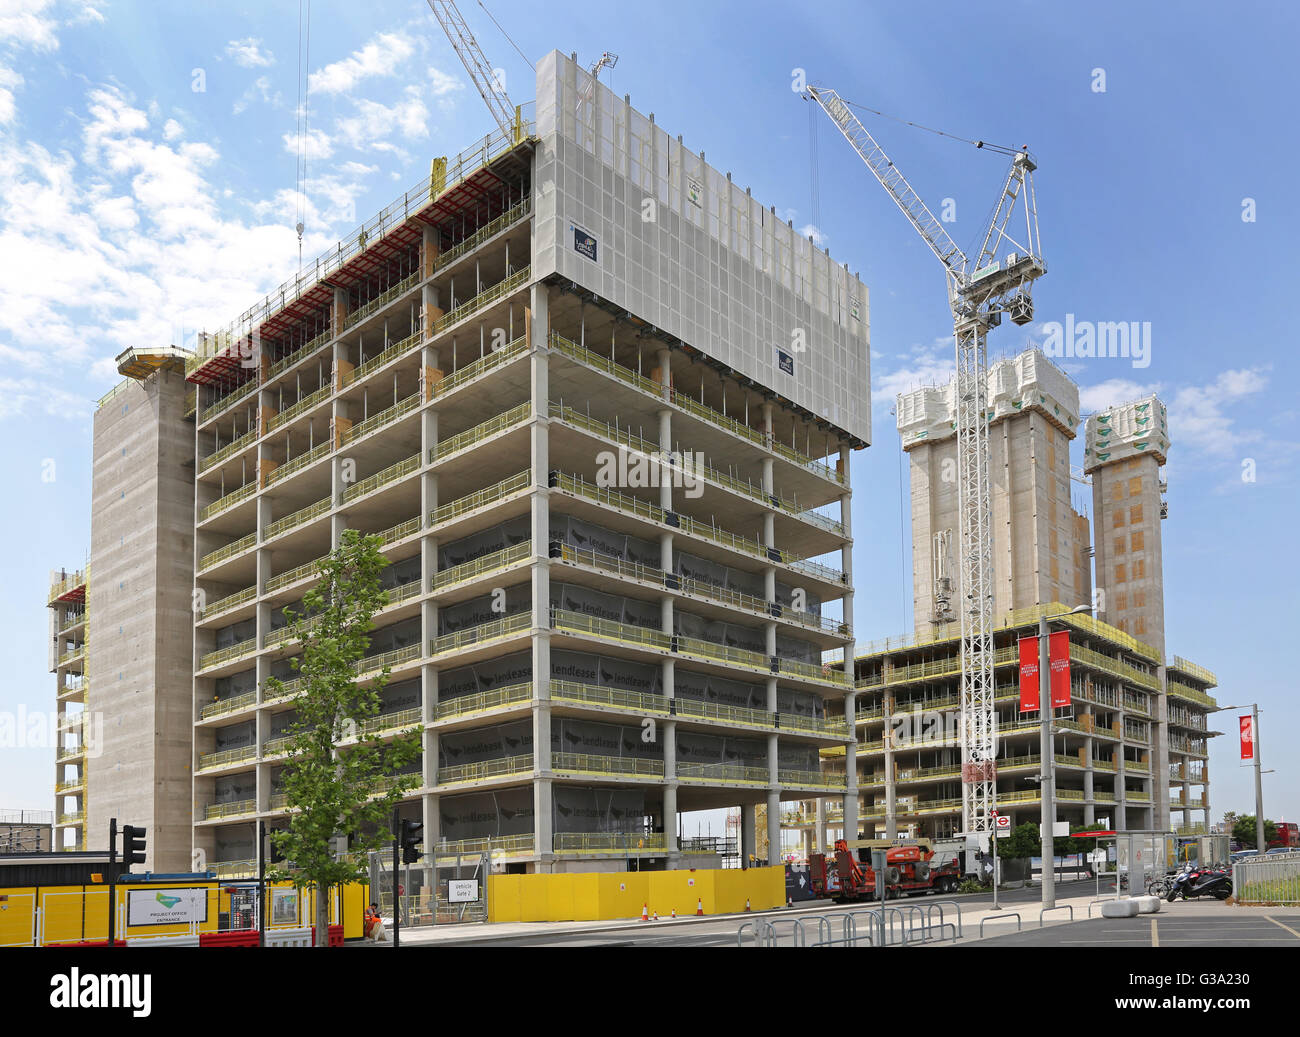 New office blocks being constructed next to the London Olympic Park. Part of The International Quarter development. - Stock Image